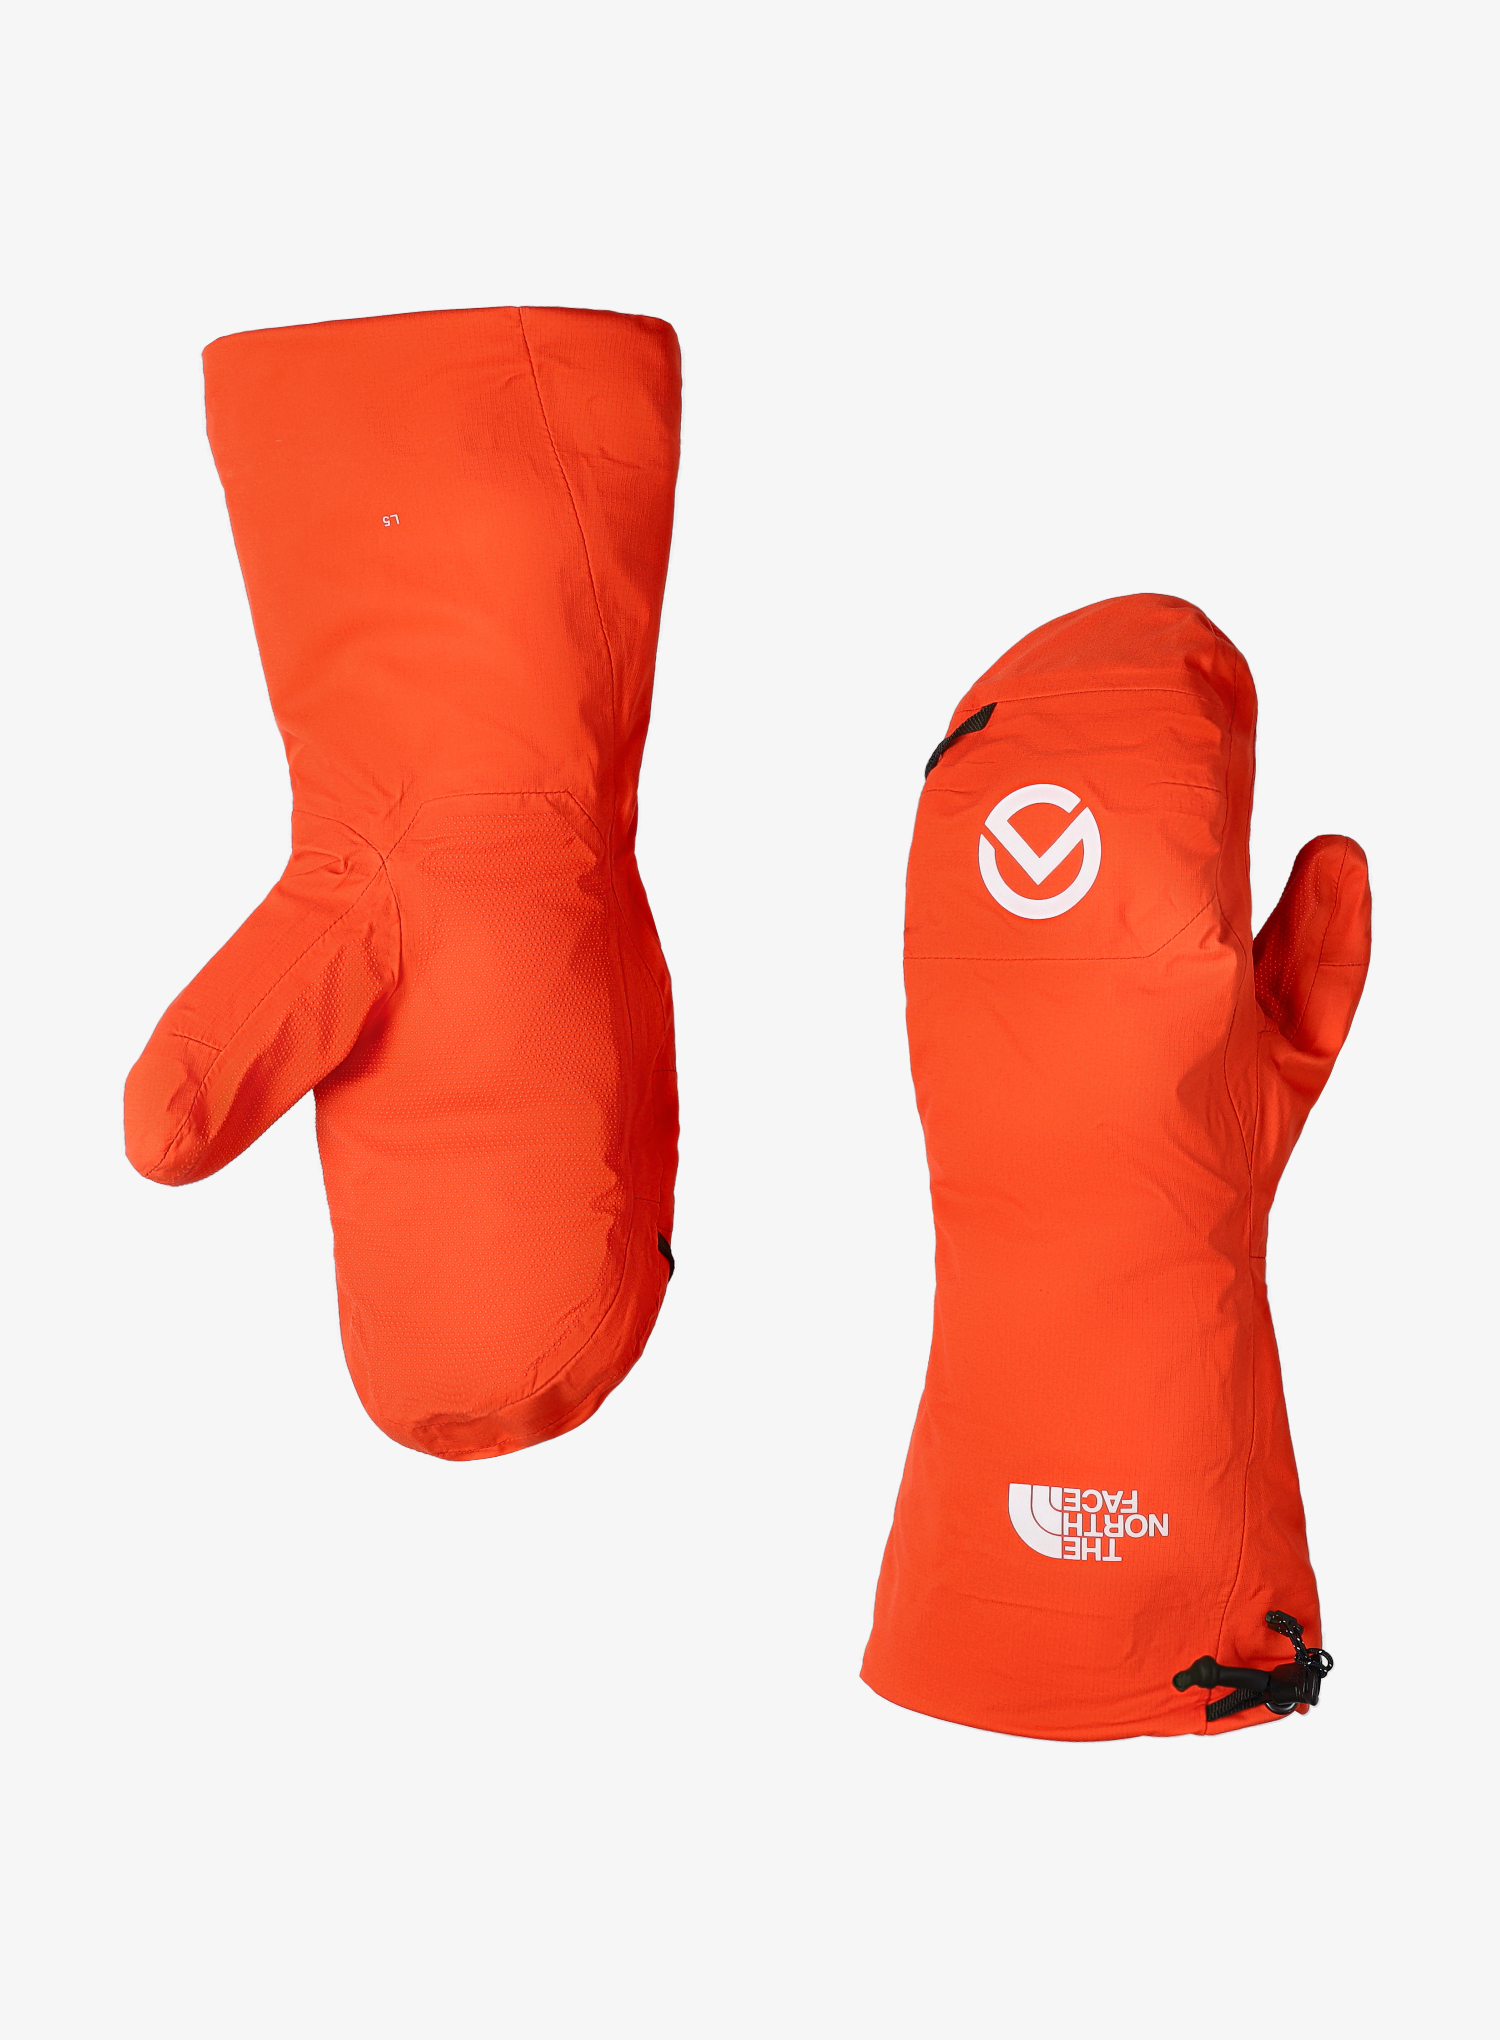 Łapawice The North Face AMK L5 Waterproof Shell Mit - flare - zdjęcie nr. 2